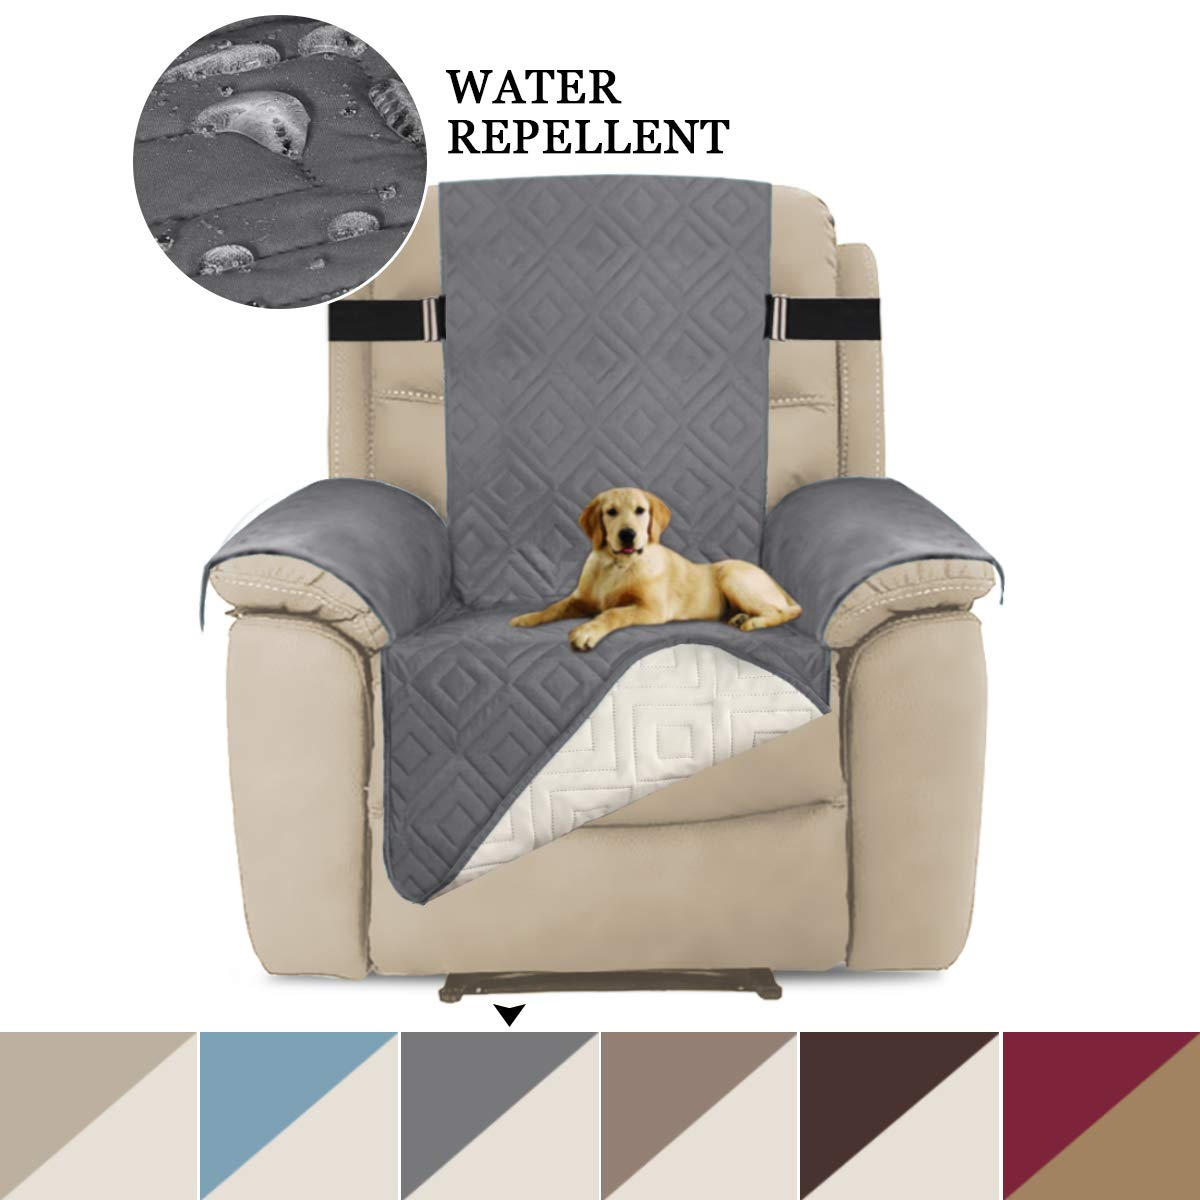 Miraculous Turquoize Quilted Reversible Furniture Cover Elastic Straps Recliner Sofa Protector For Living Room Machine Washable Dryer Safe Double Diamond Machost Co Dining Chair Design Ideas Machostcouk